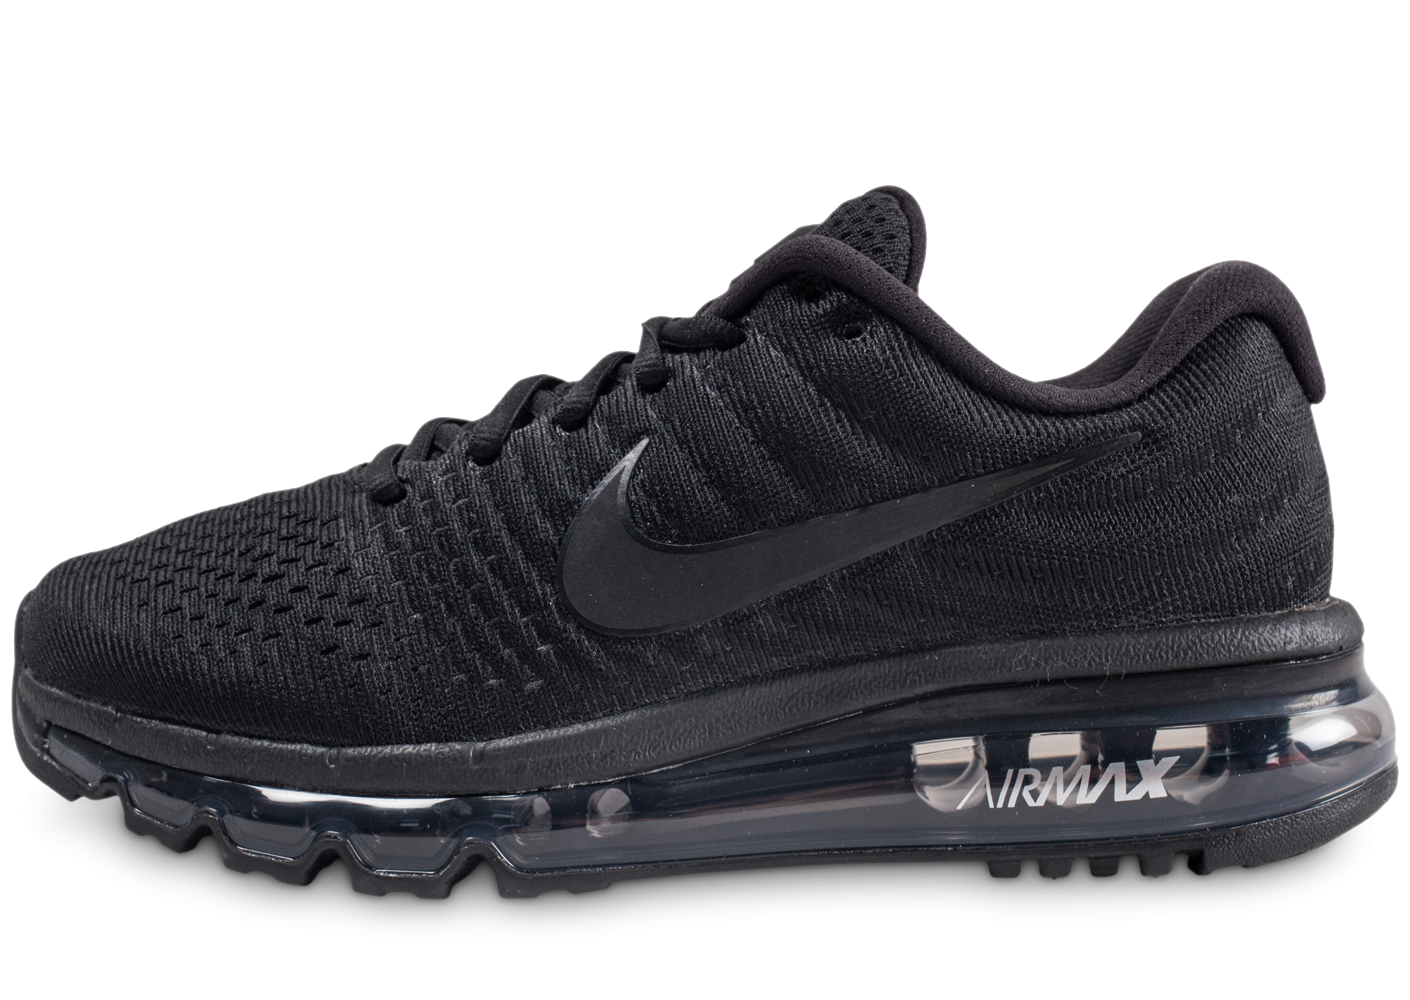 the cheapest first rate no sale tax Nike Air Max 2017 noire femme